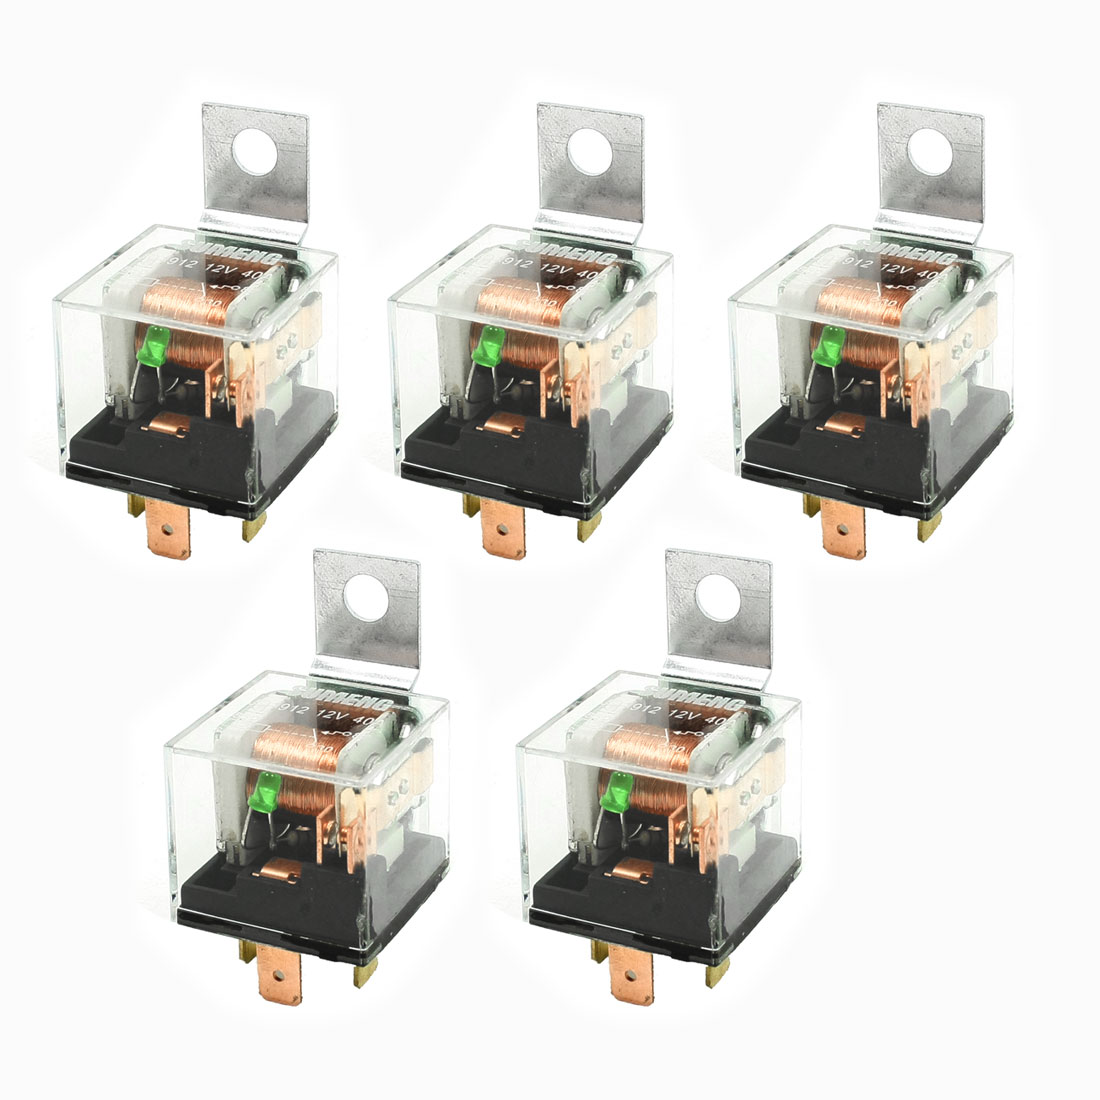 5 Pcs Car Auto Security Green Indicator Light 4P Power Relay DC 12V 40A